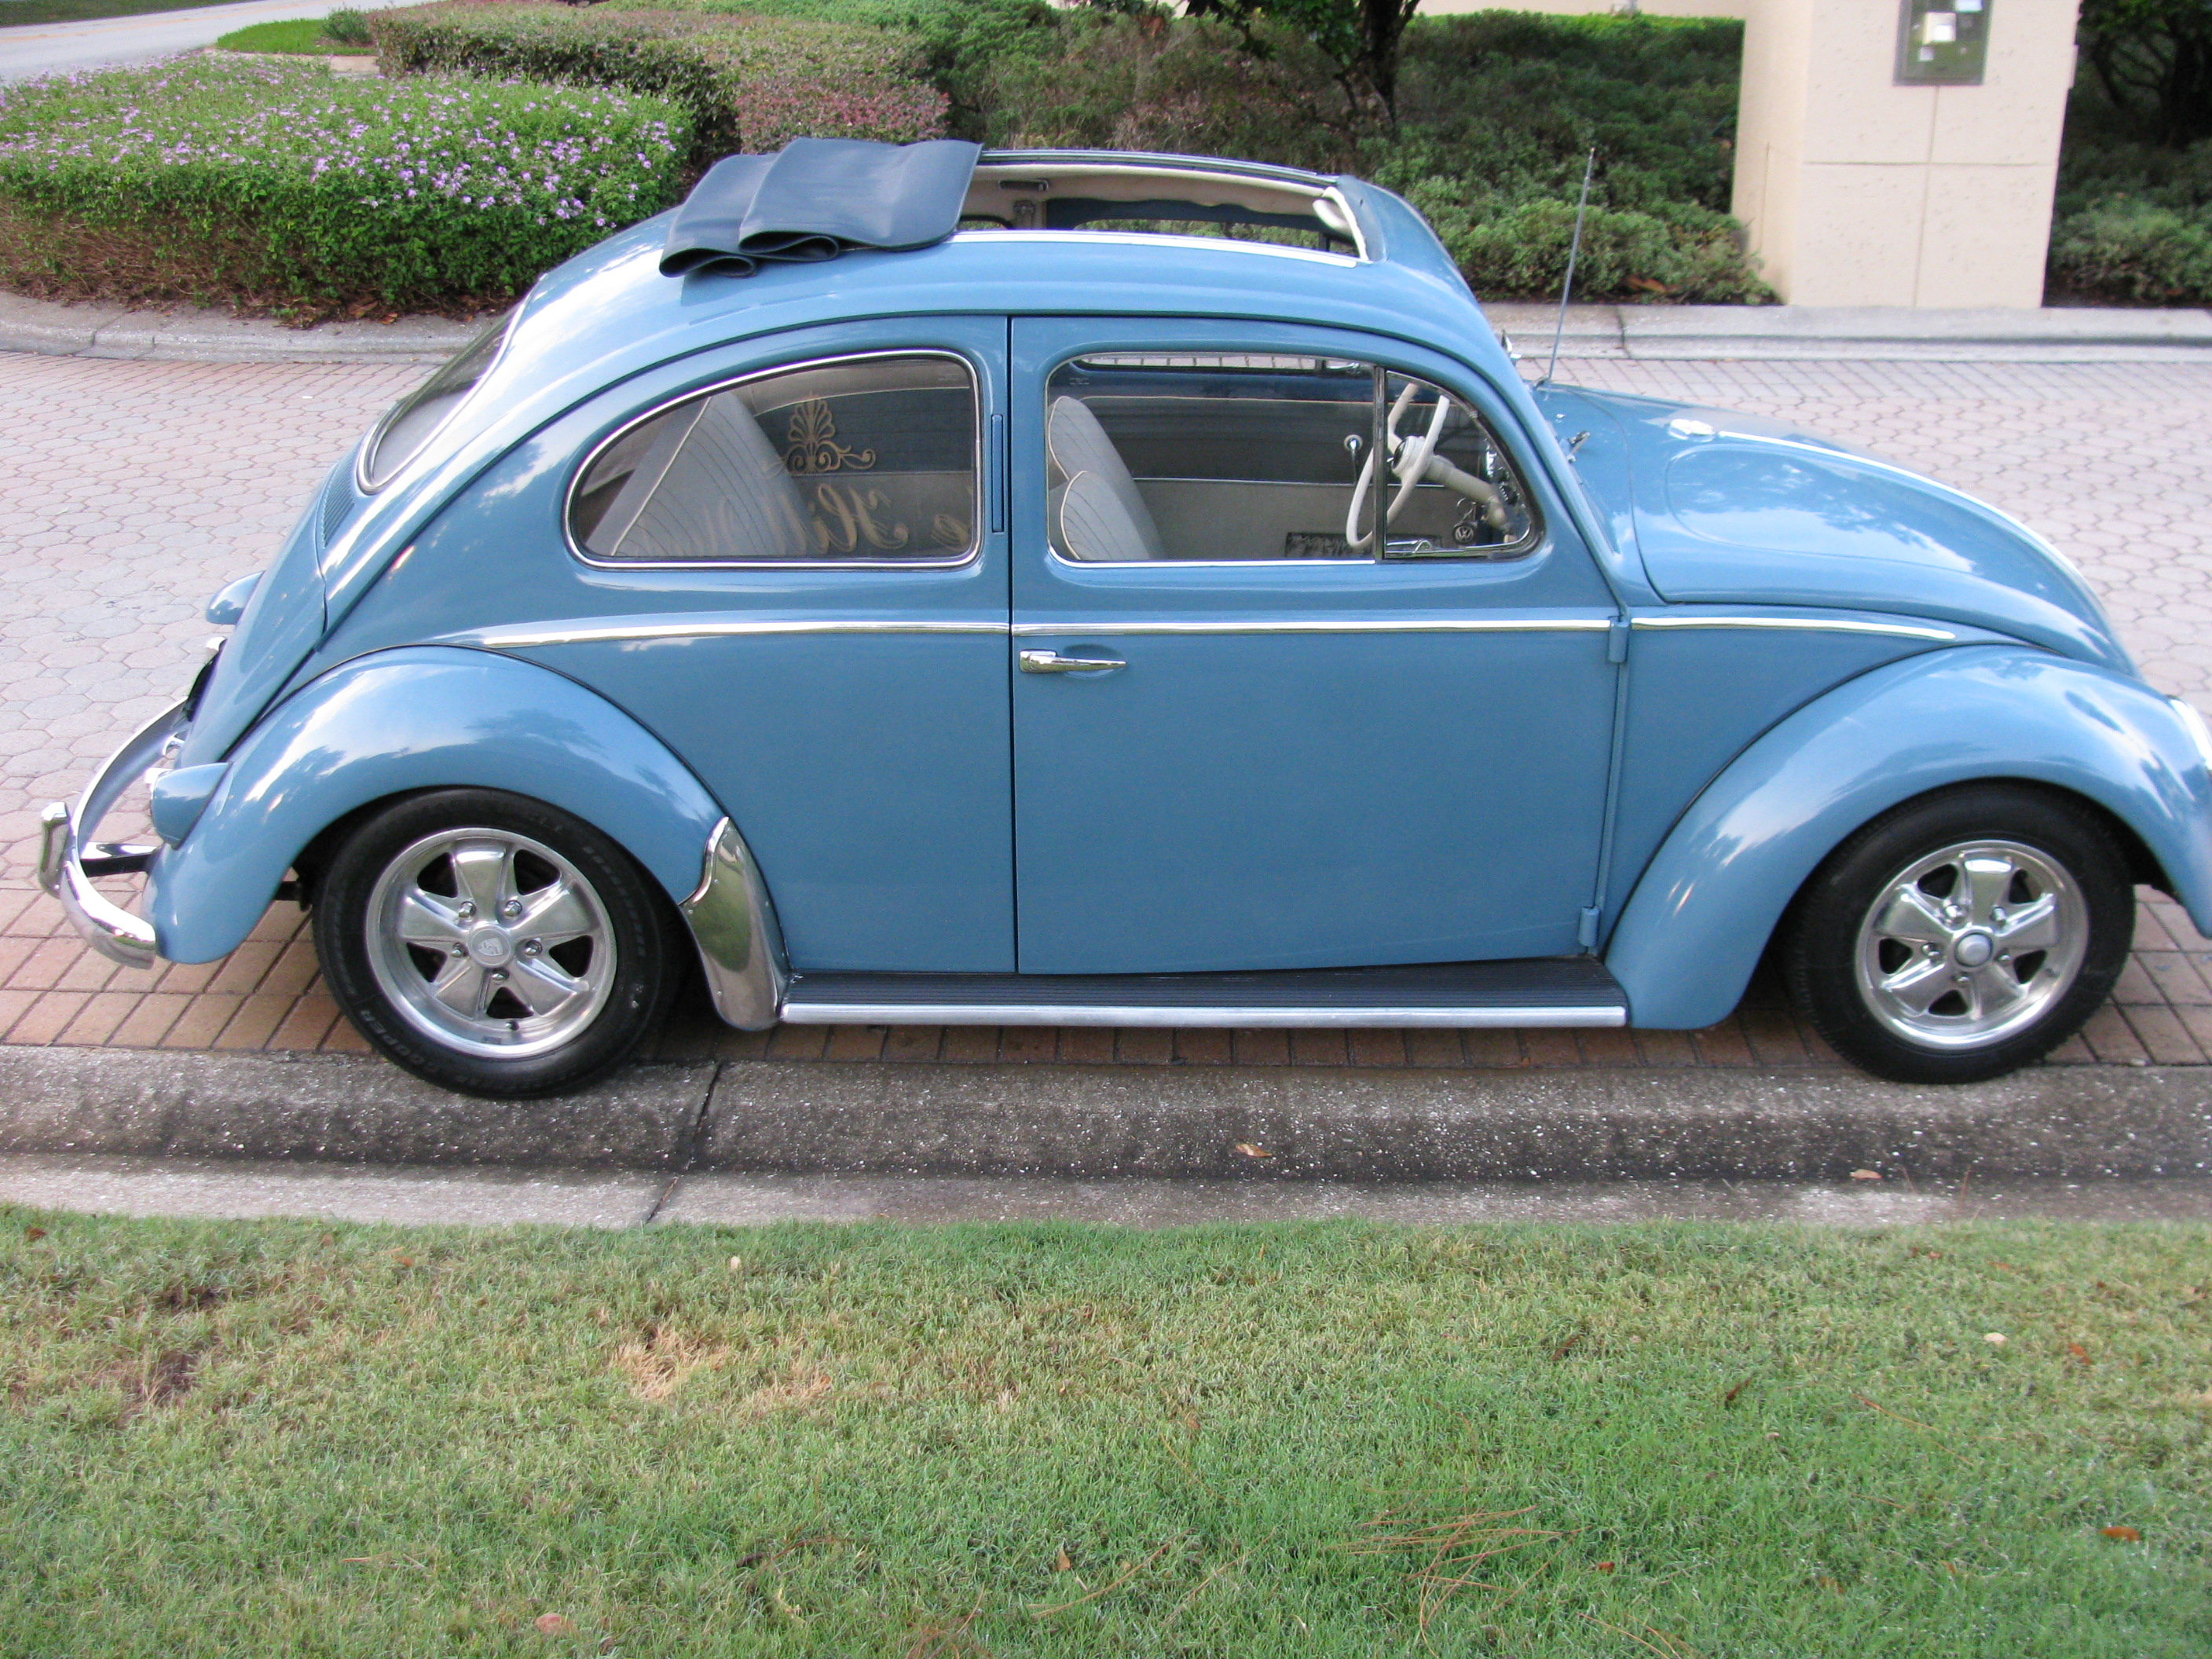 1958 vw bug ragtop 005 jpg 2816 2112